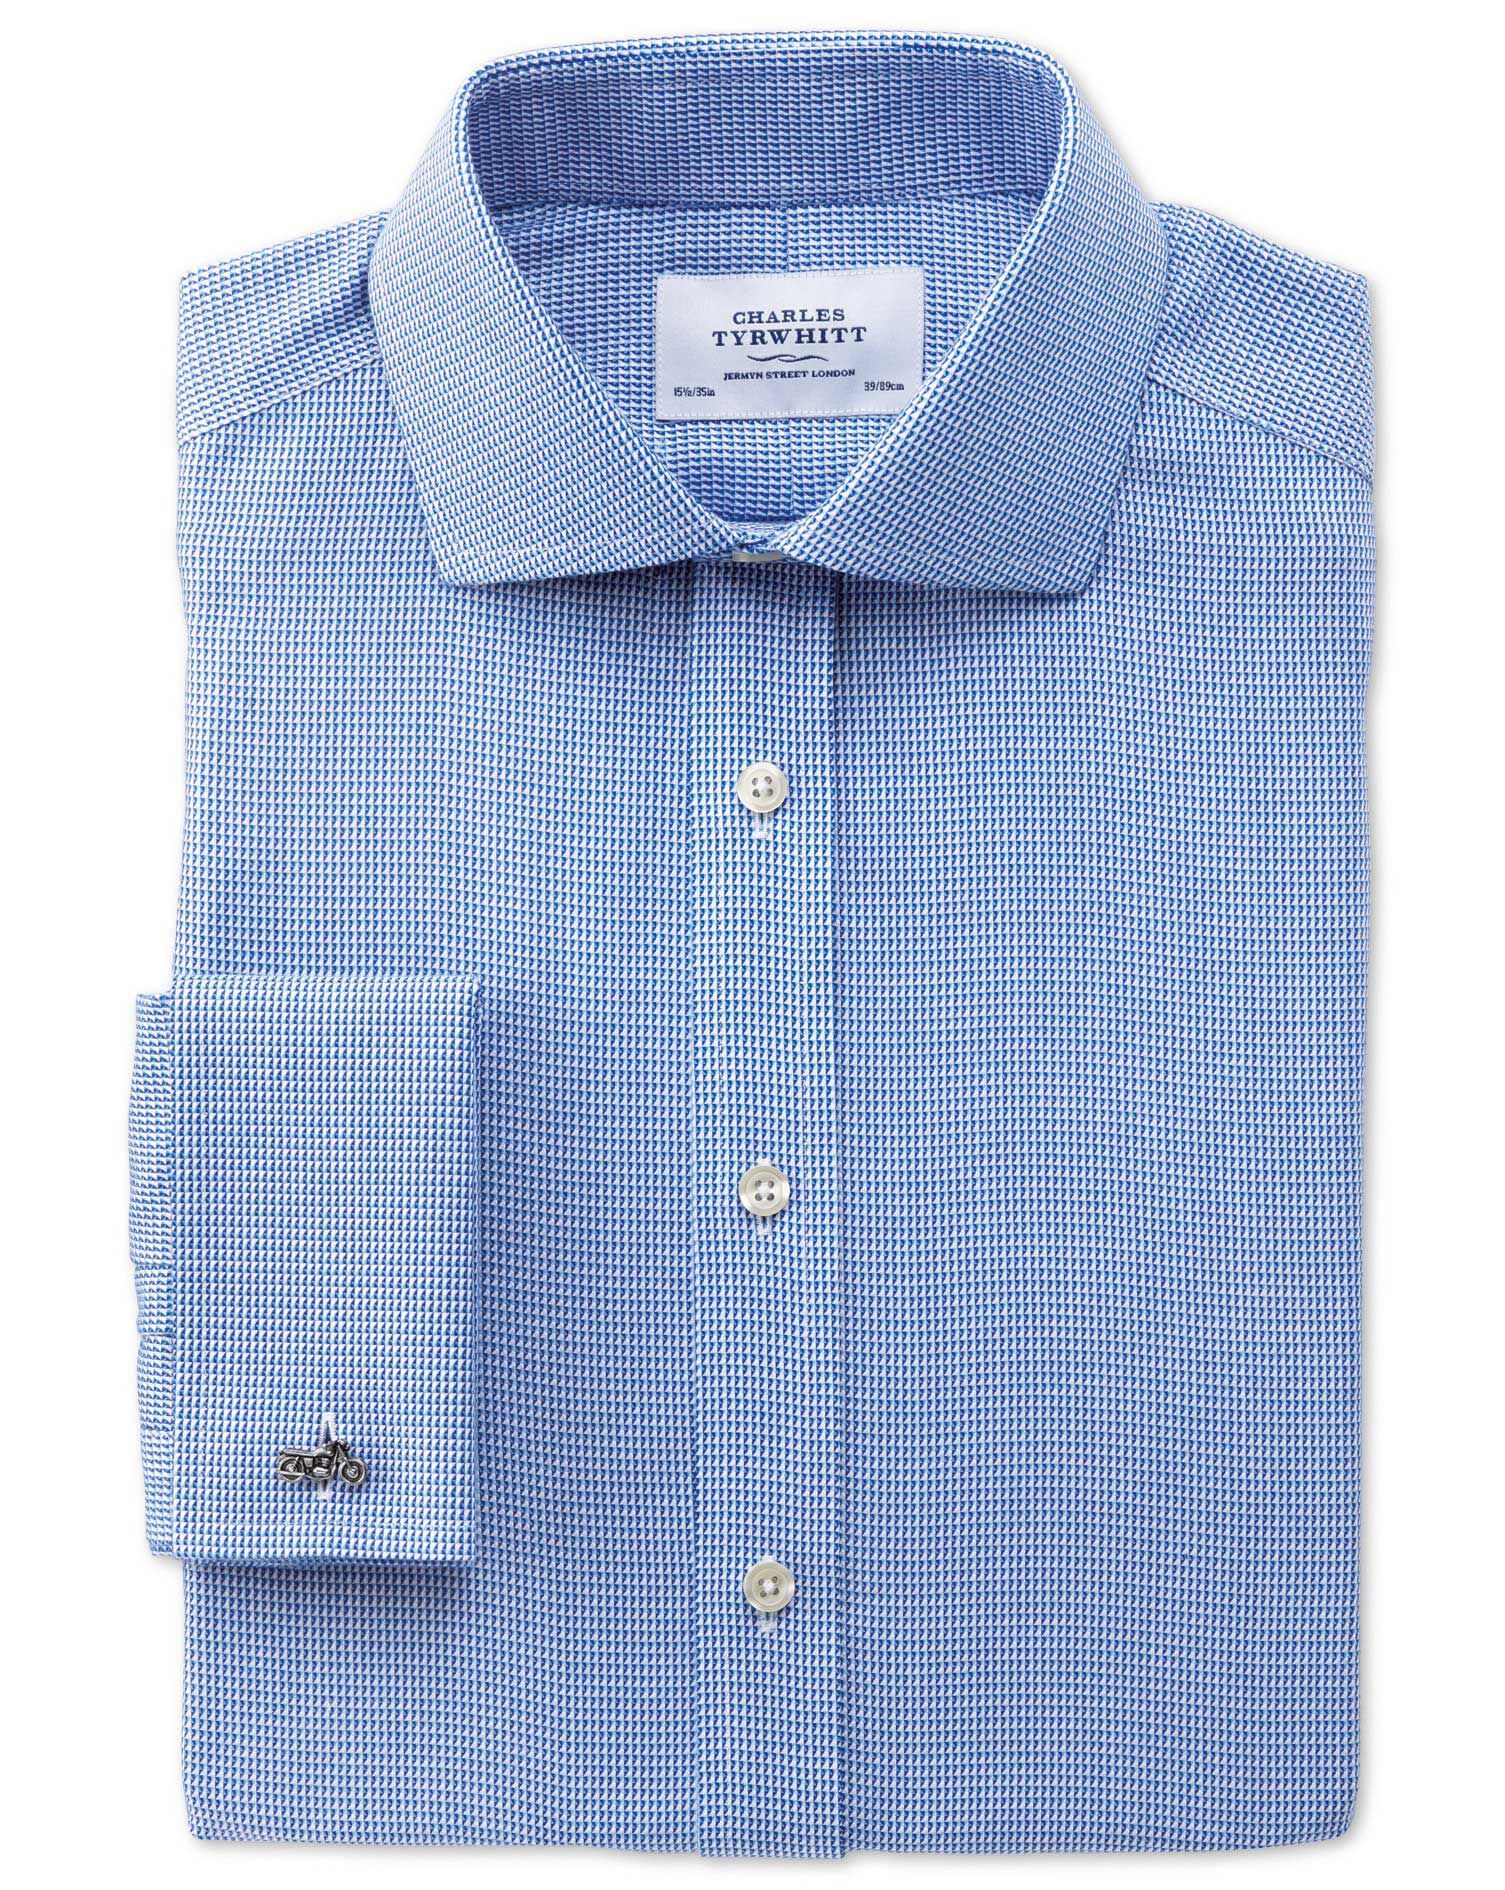 Extra Slim Fit Cutaway Collar Non-Iron Triangle Textured Royal Blue Cotton Formal Shirt Double Cuff